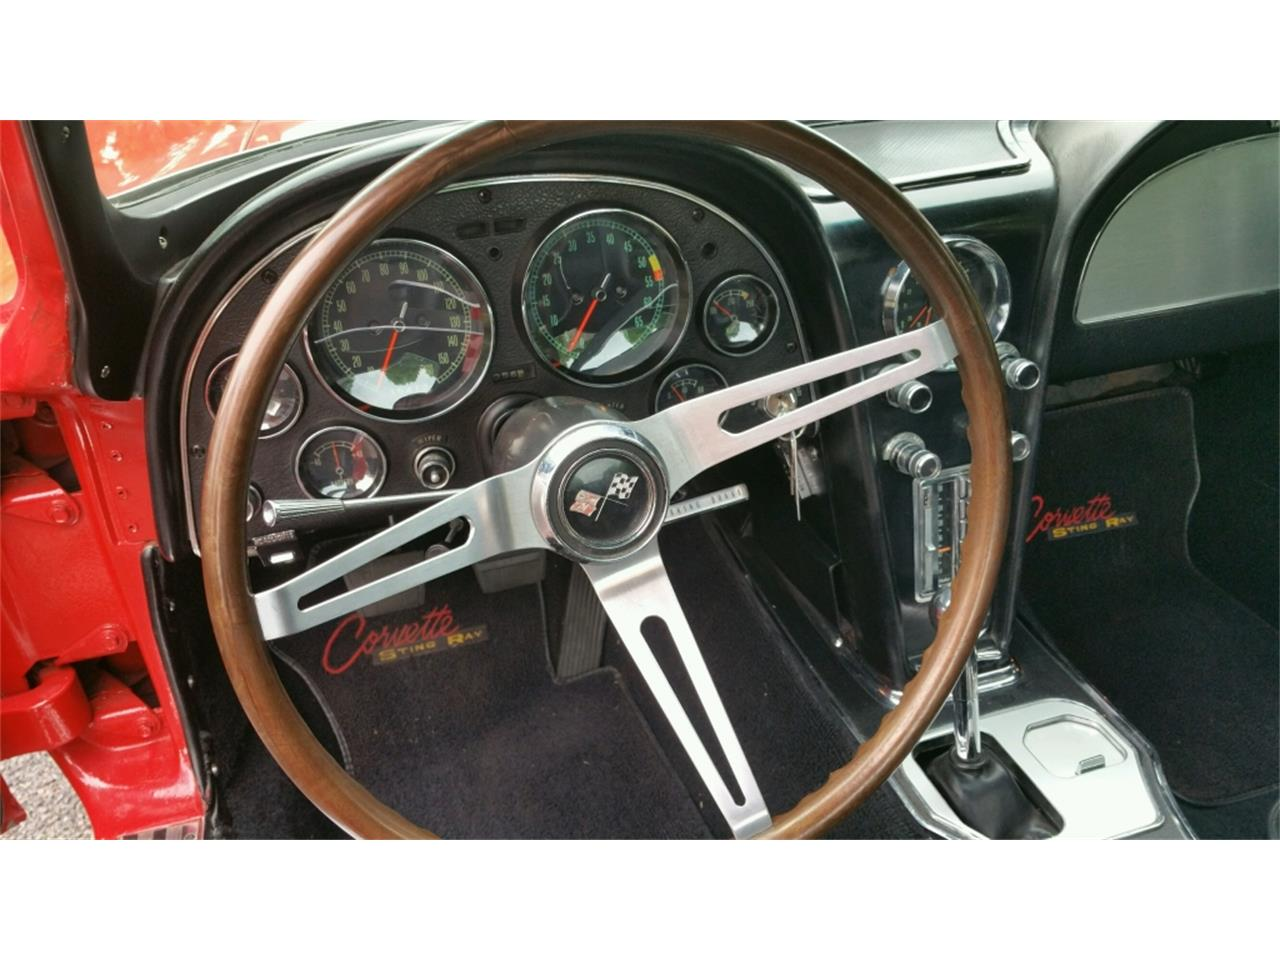 Large Picture of Classic 1966 Corvette located in Missouri - $59,995.00 Offered by Vintage Vettes, LLC - MO25